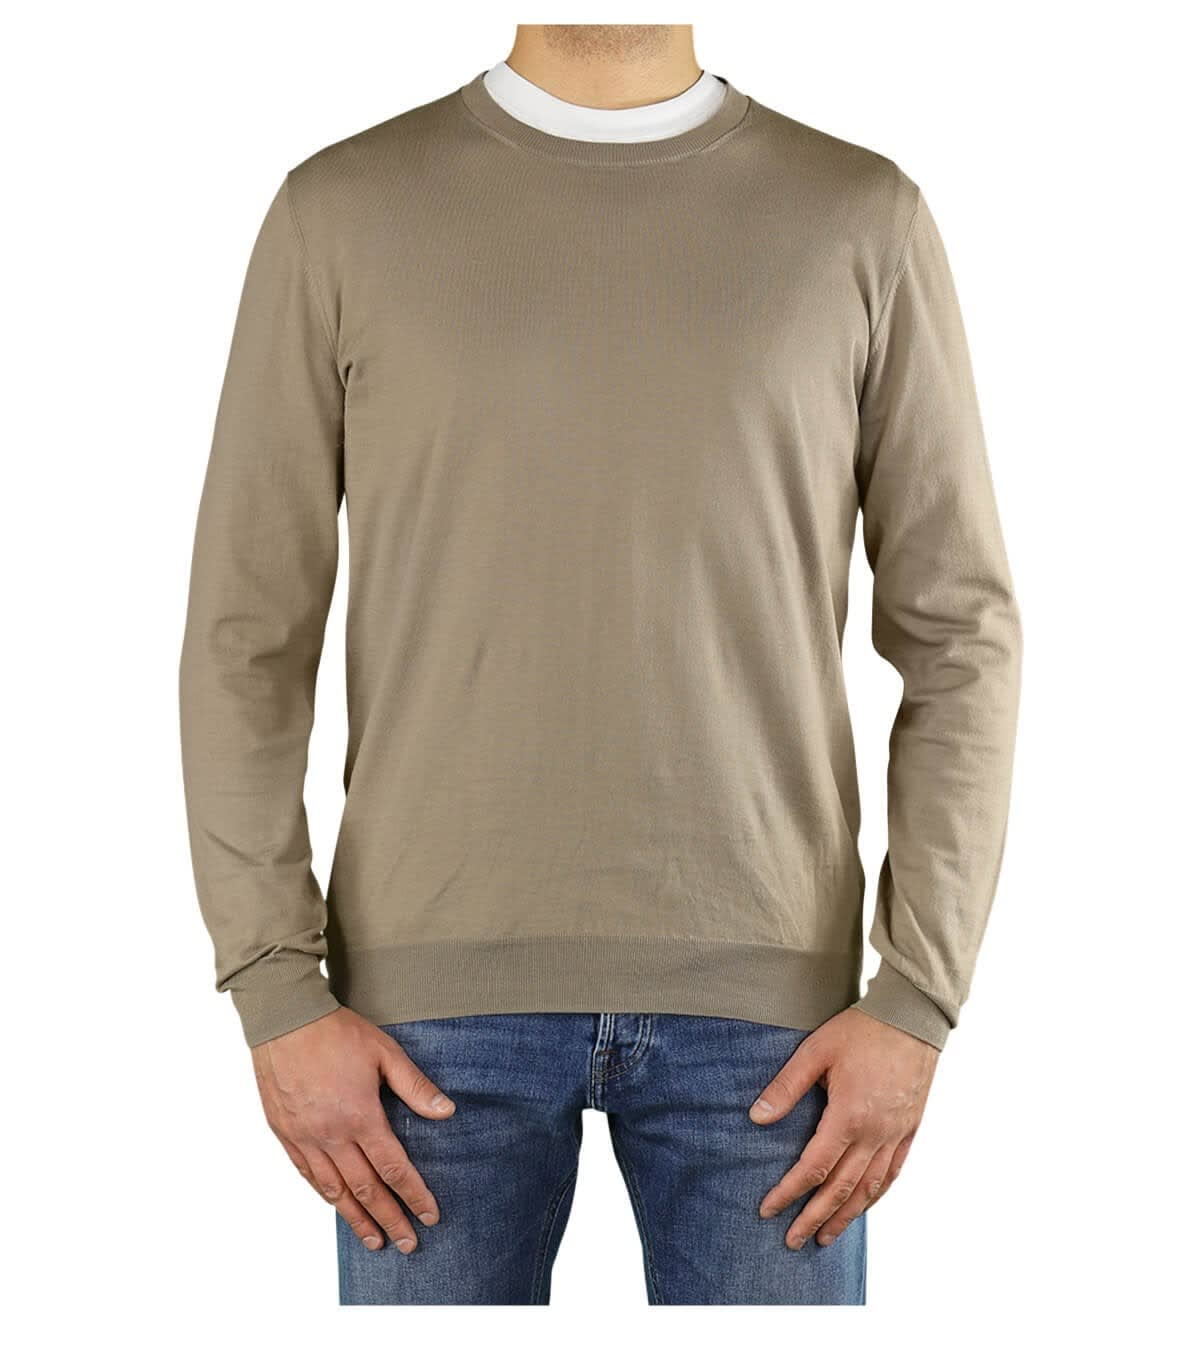 Paolo Pecora Cottons LIGHT BROWN CREW NECK JUMPER